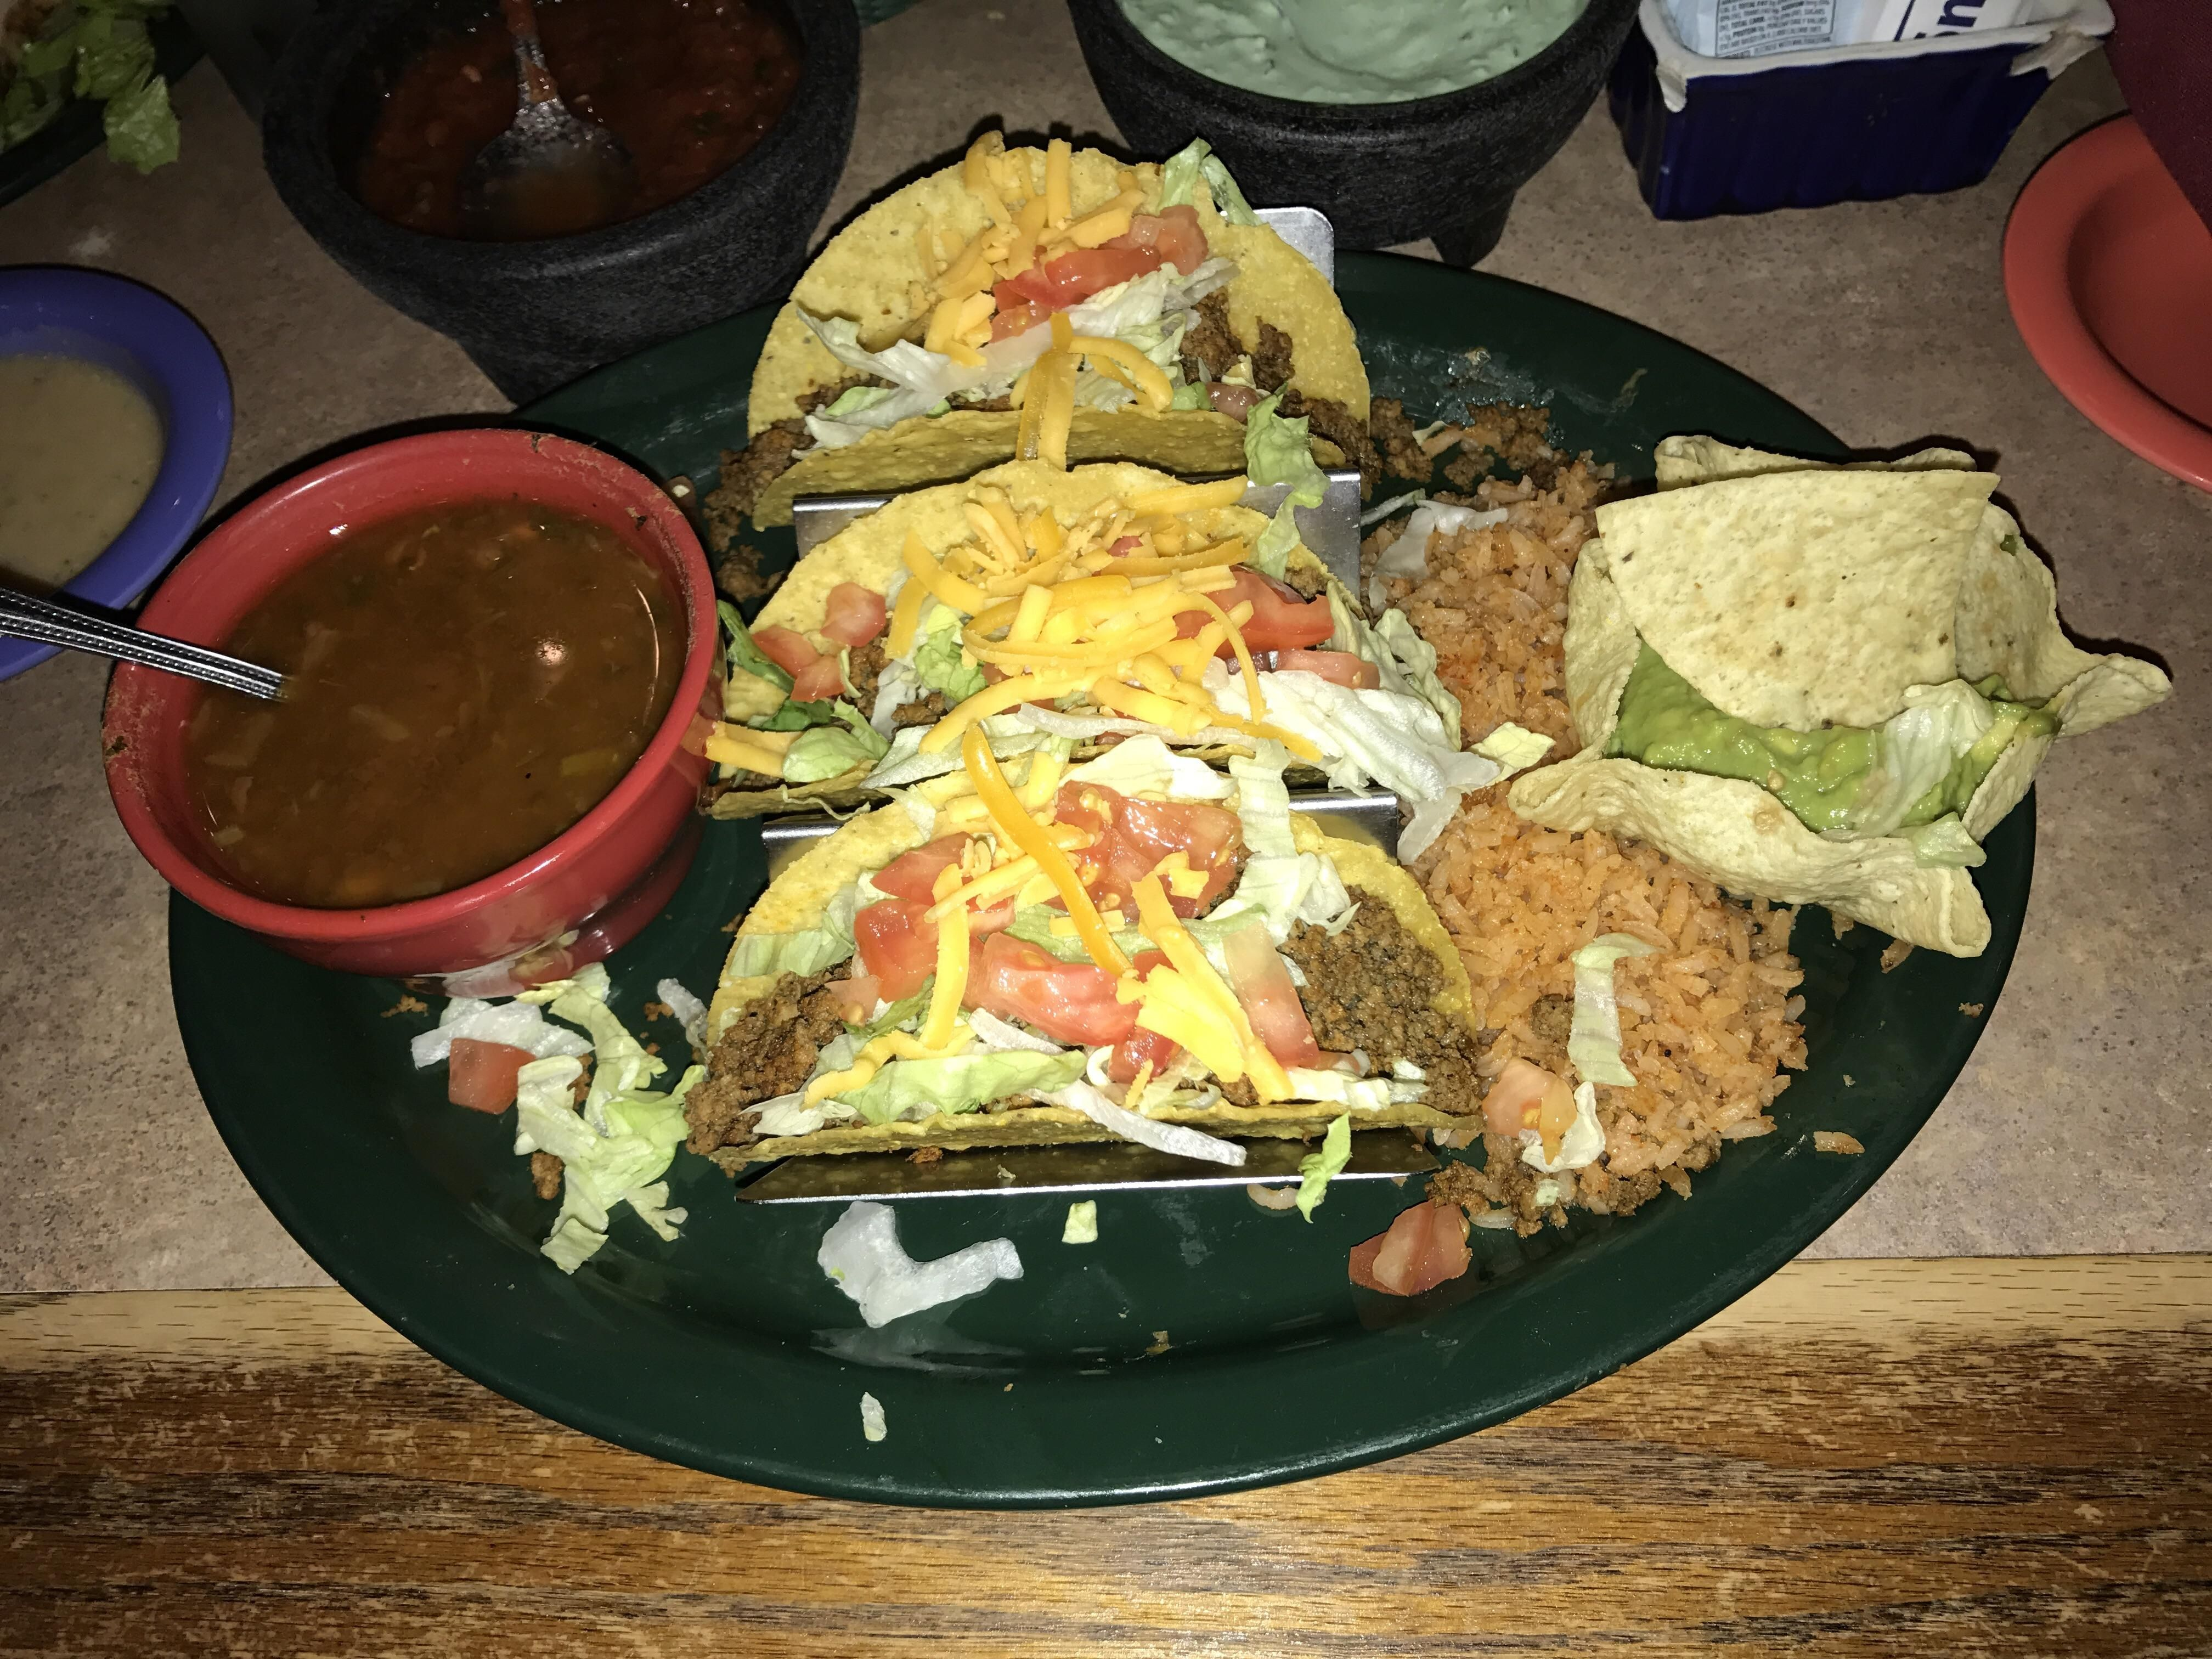 [I Ate] Tacos recipes food cooking delicious foodie